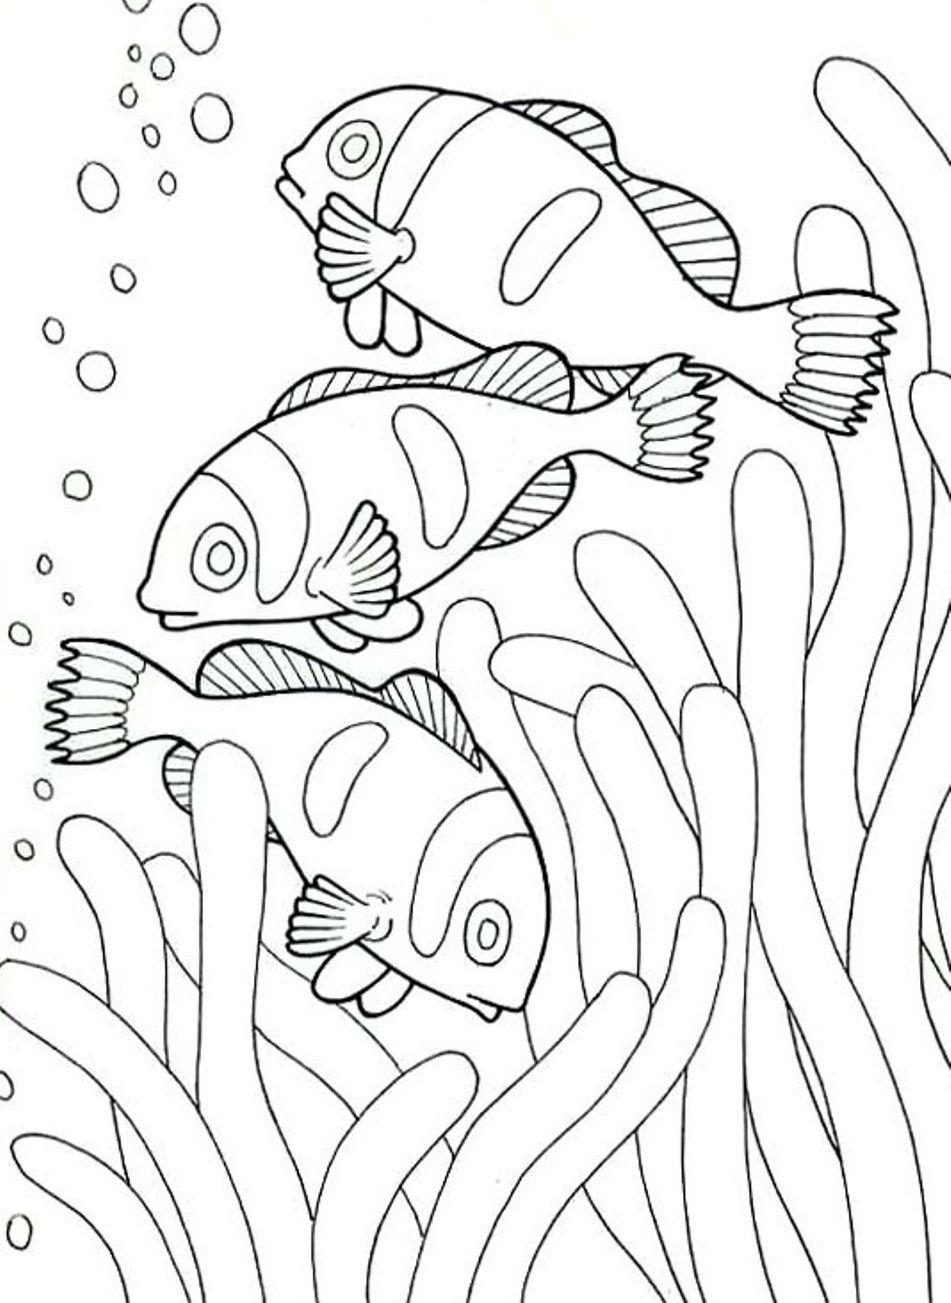 Creatures Great and Small sea prints to color Recherche